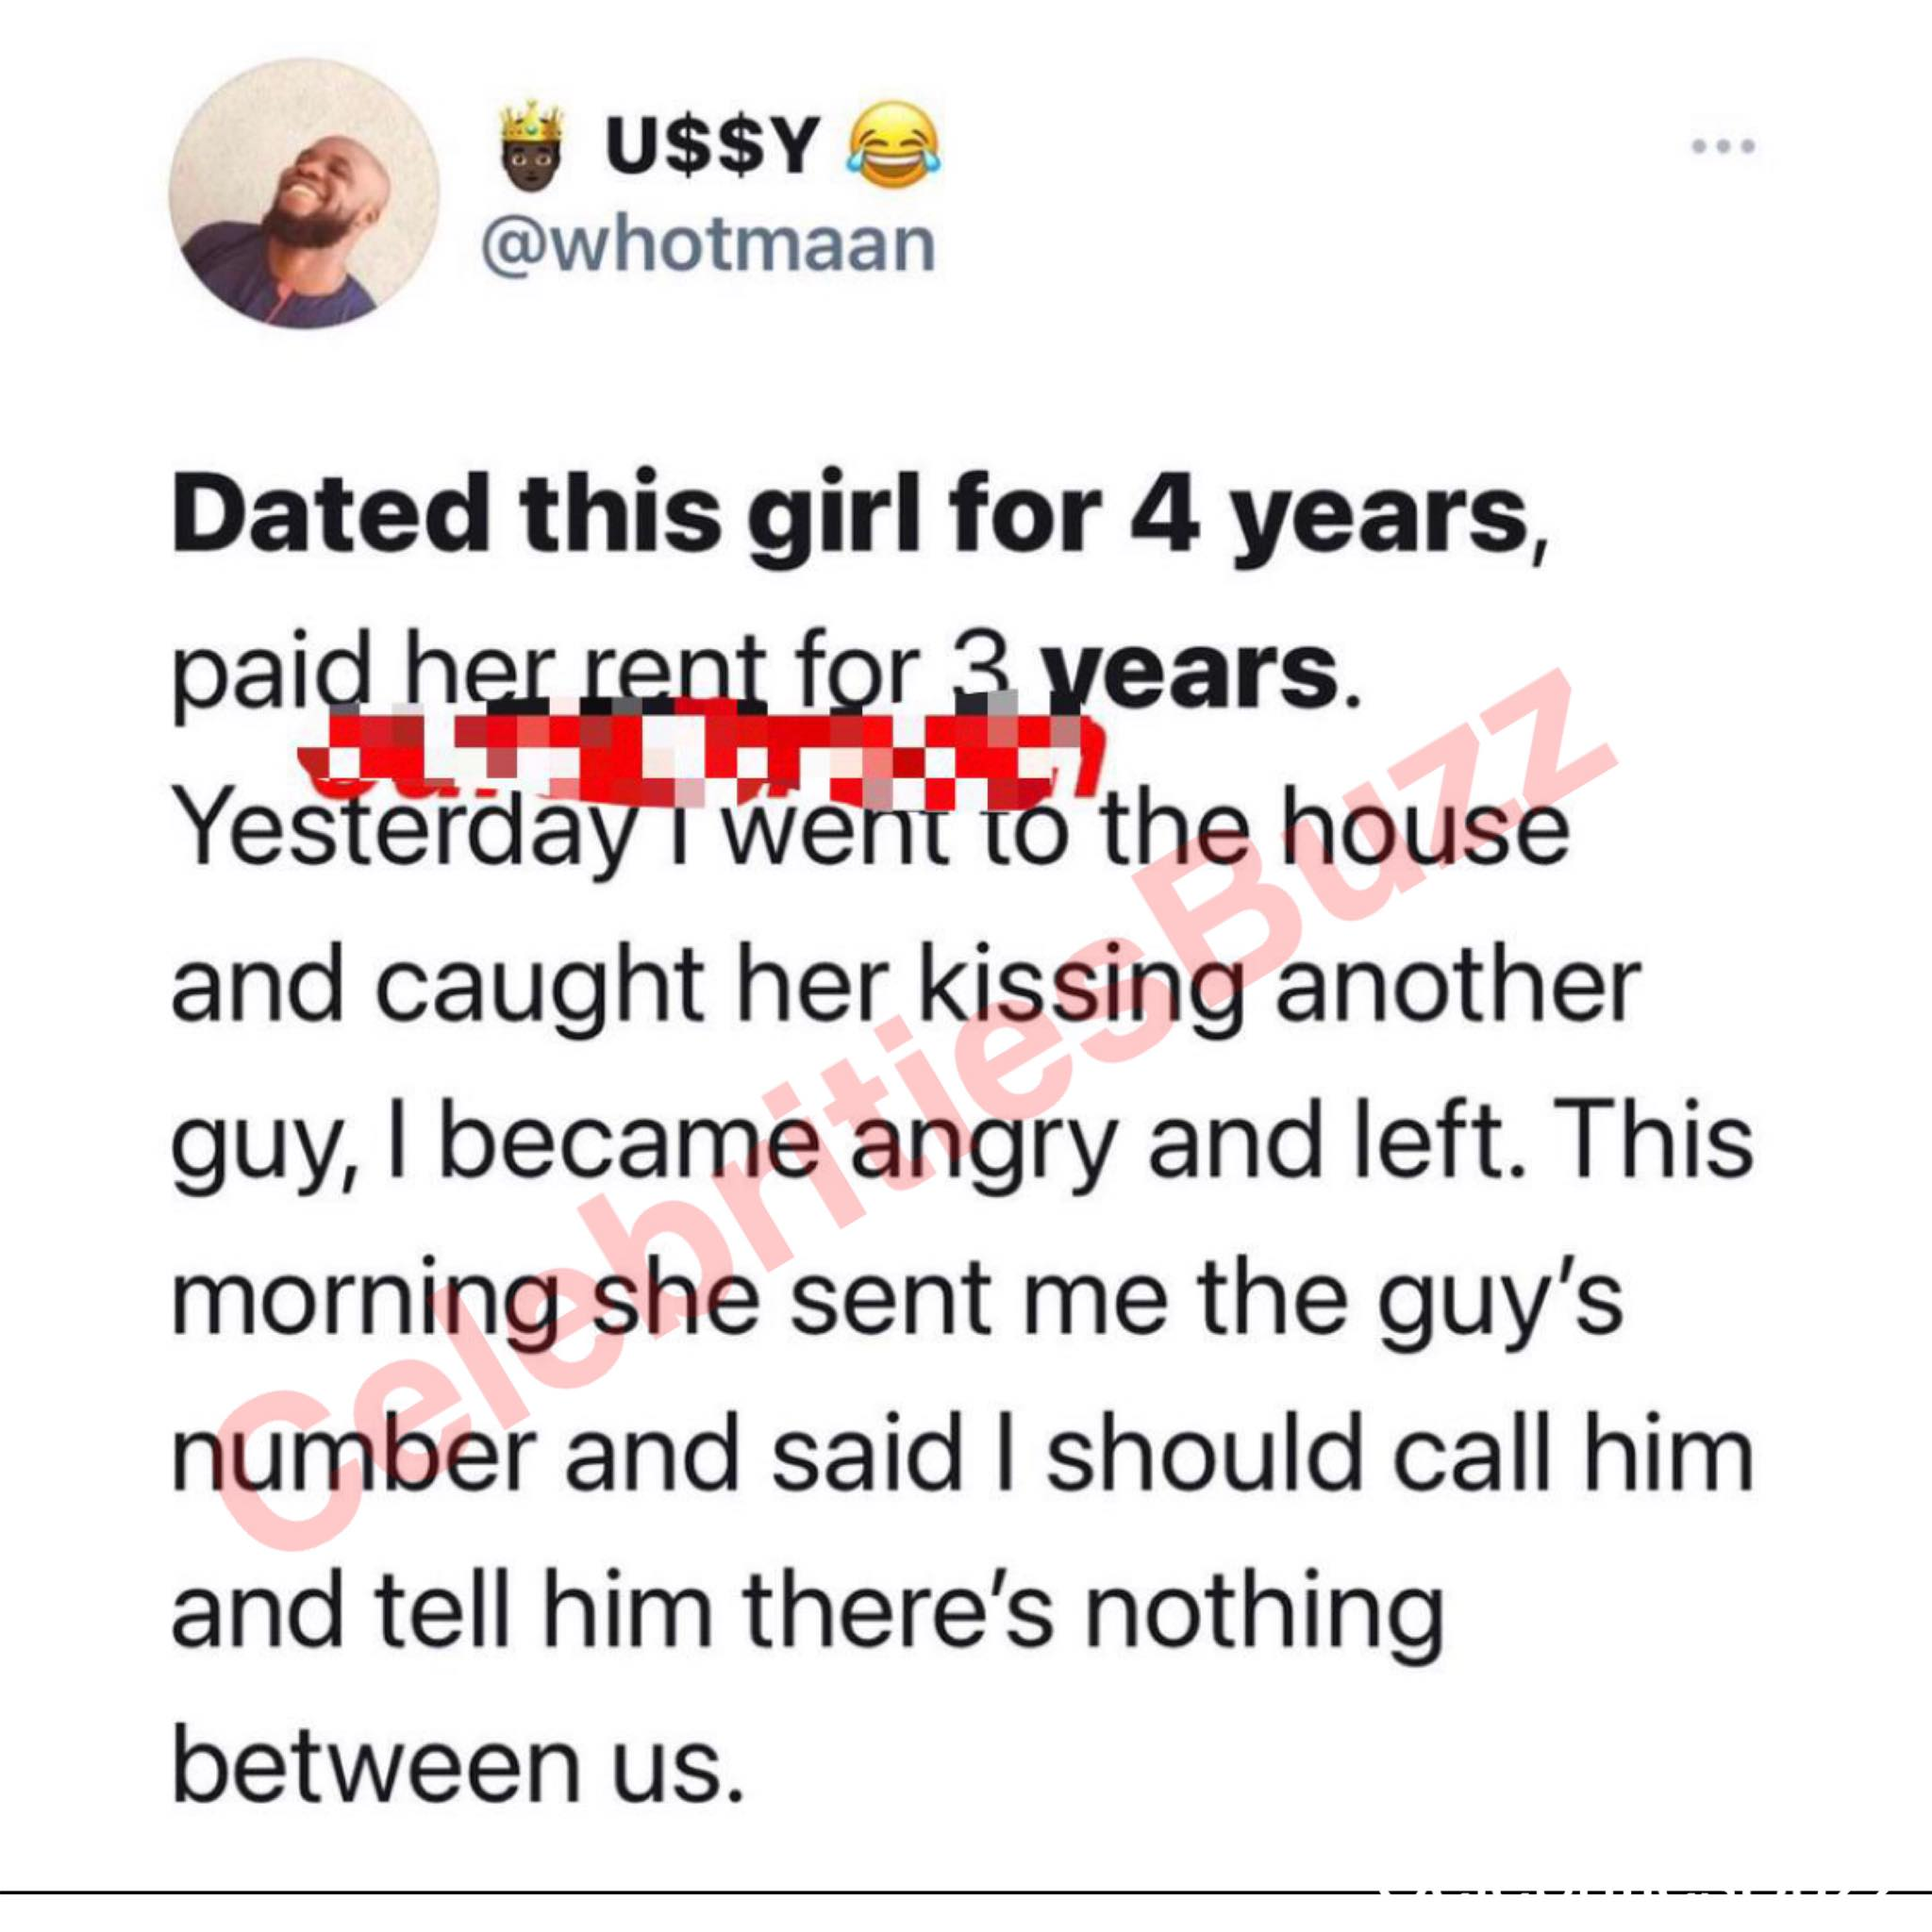 Dated this girl for 4 years, paid her rent for 3 years but I caught her yesterday kissing another man; Broken hearted guy